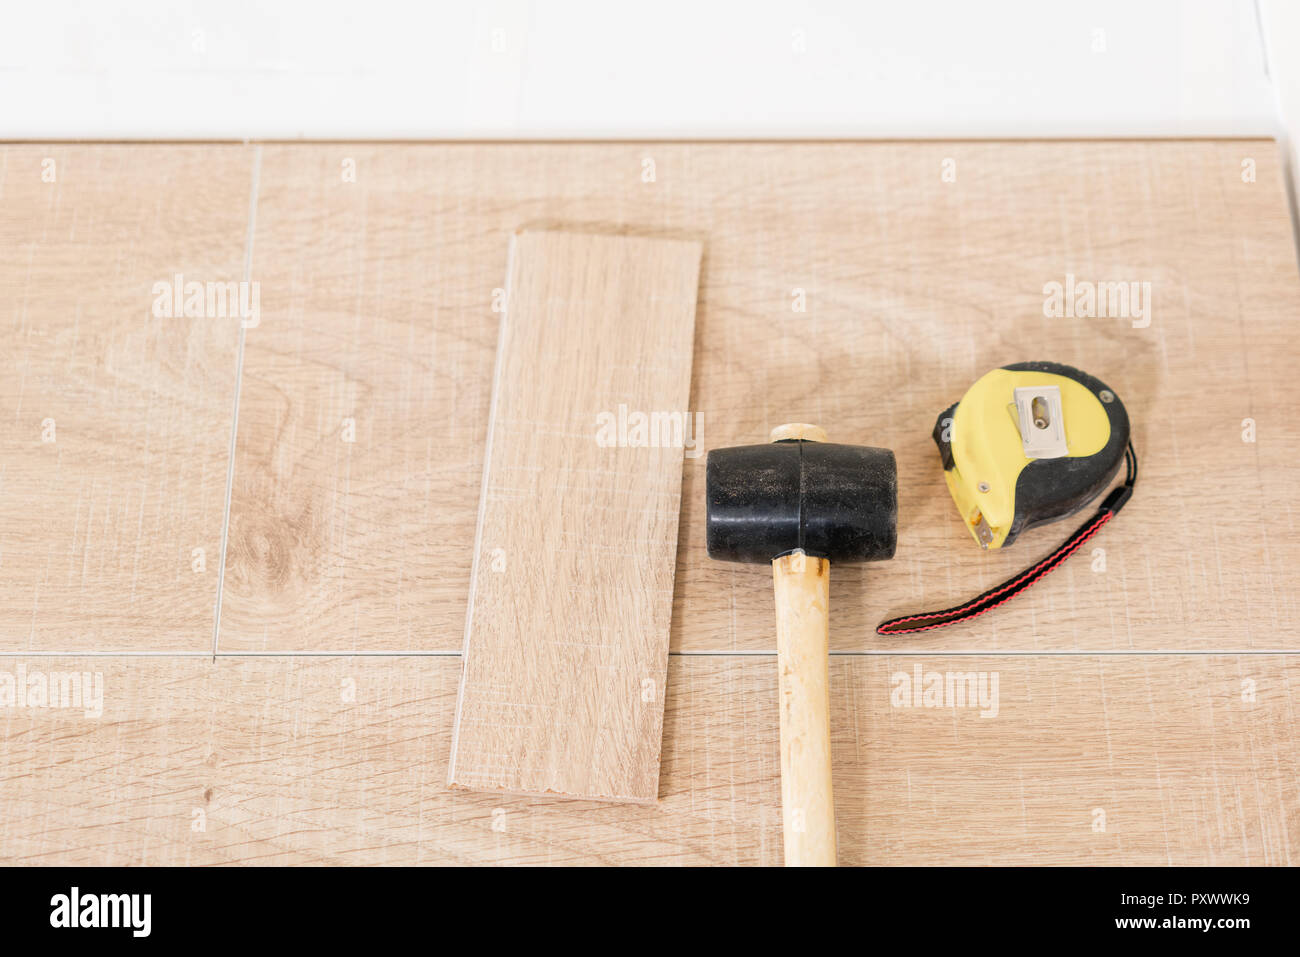 hammer indoor stockfotos & hammer indoor bilder - alamy